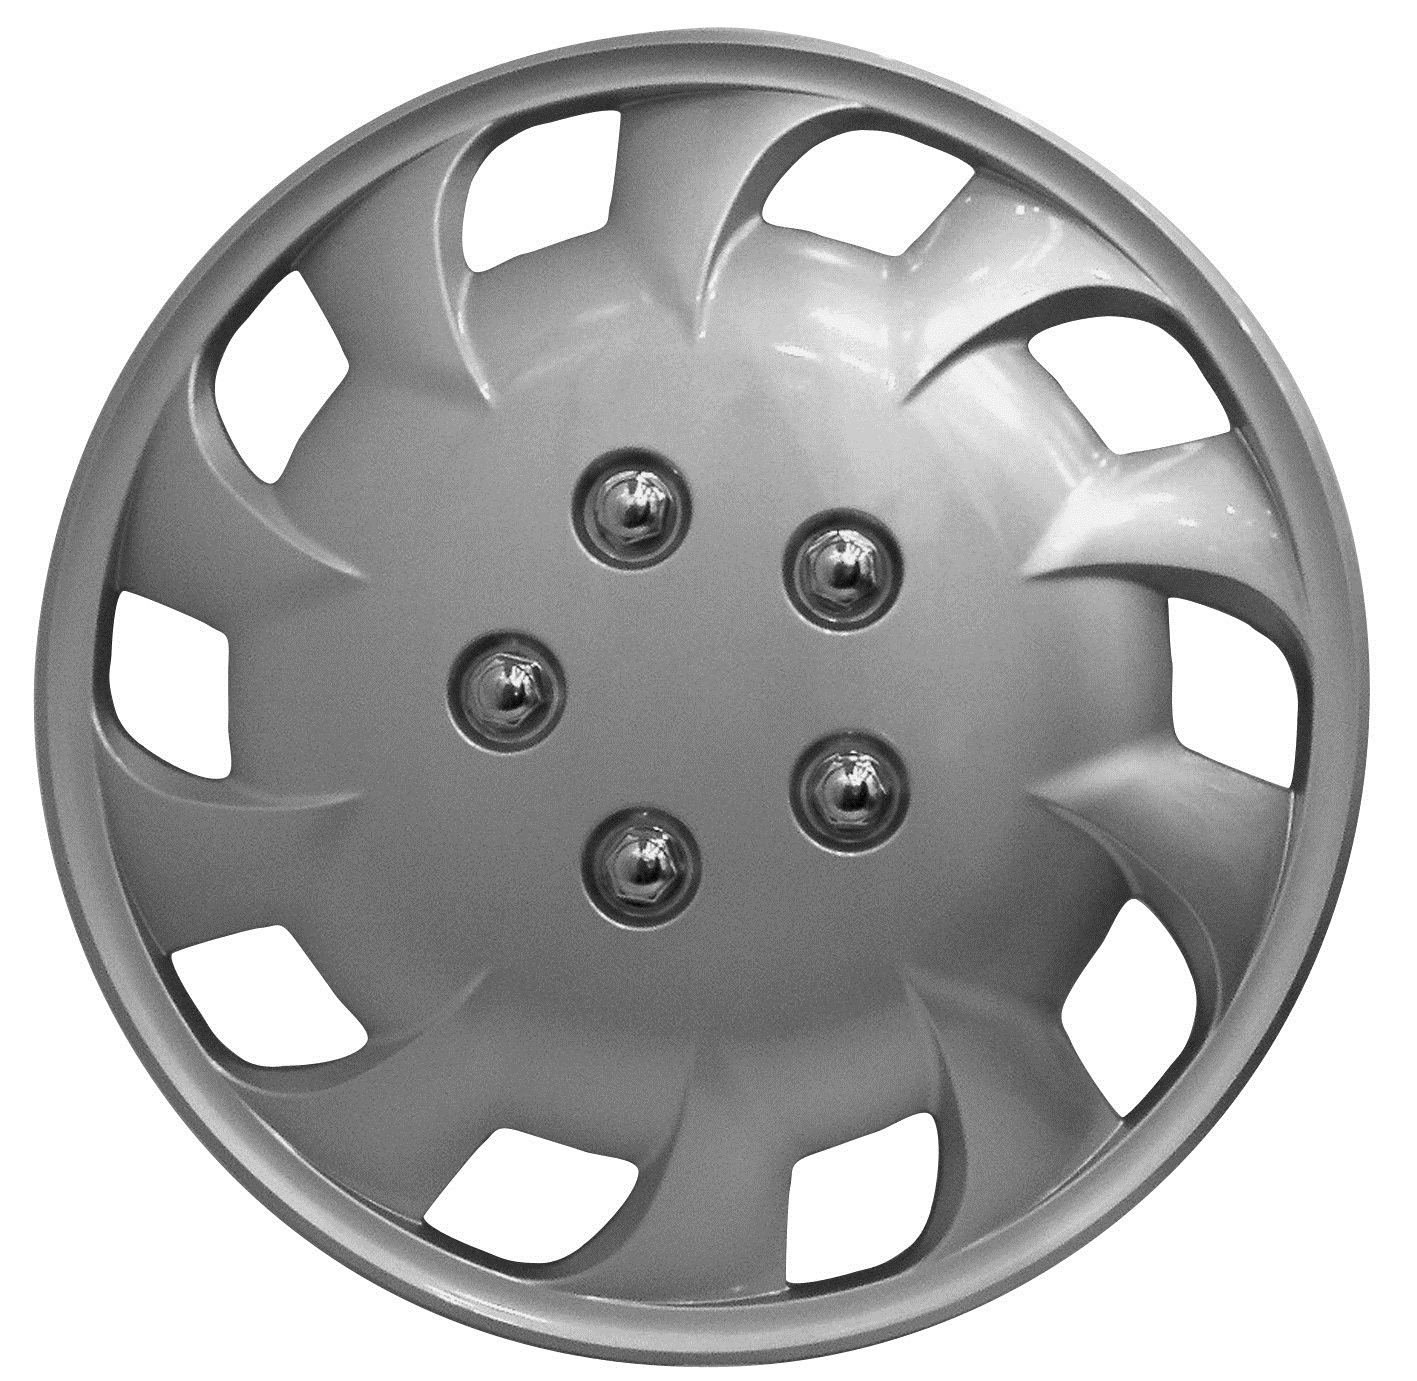 Details about Streetwize Mercury 14 Inch Wheel Trim Set Silver Set of 4 Hub Caps Covers 14